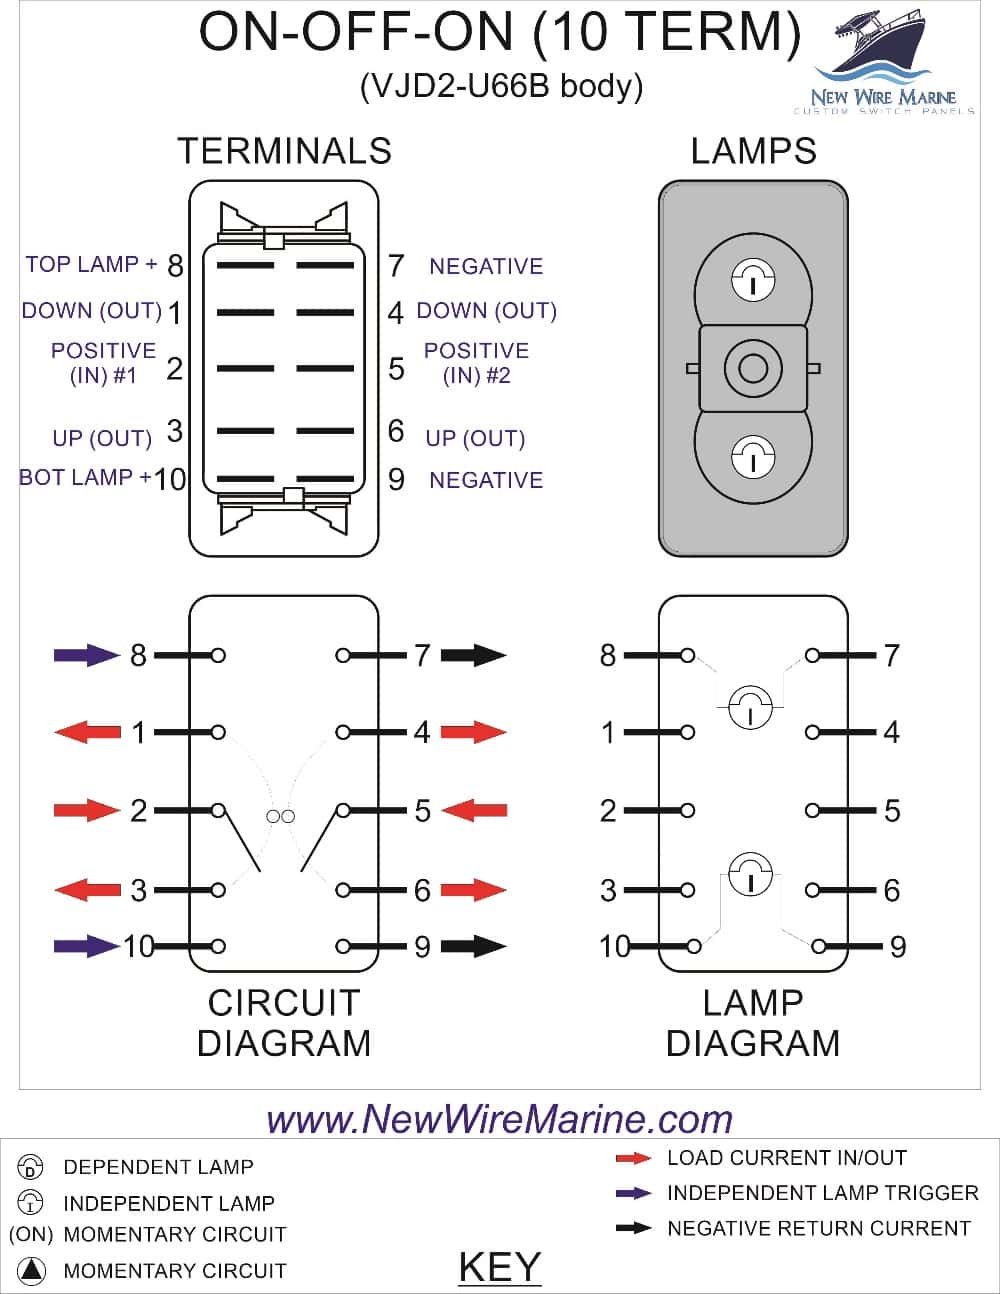 Momentary Push Button Wiring Diagrams Pull | Manual E-Books - Push Button Switch Wiring Diagram